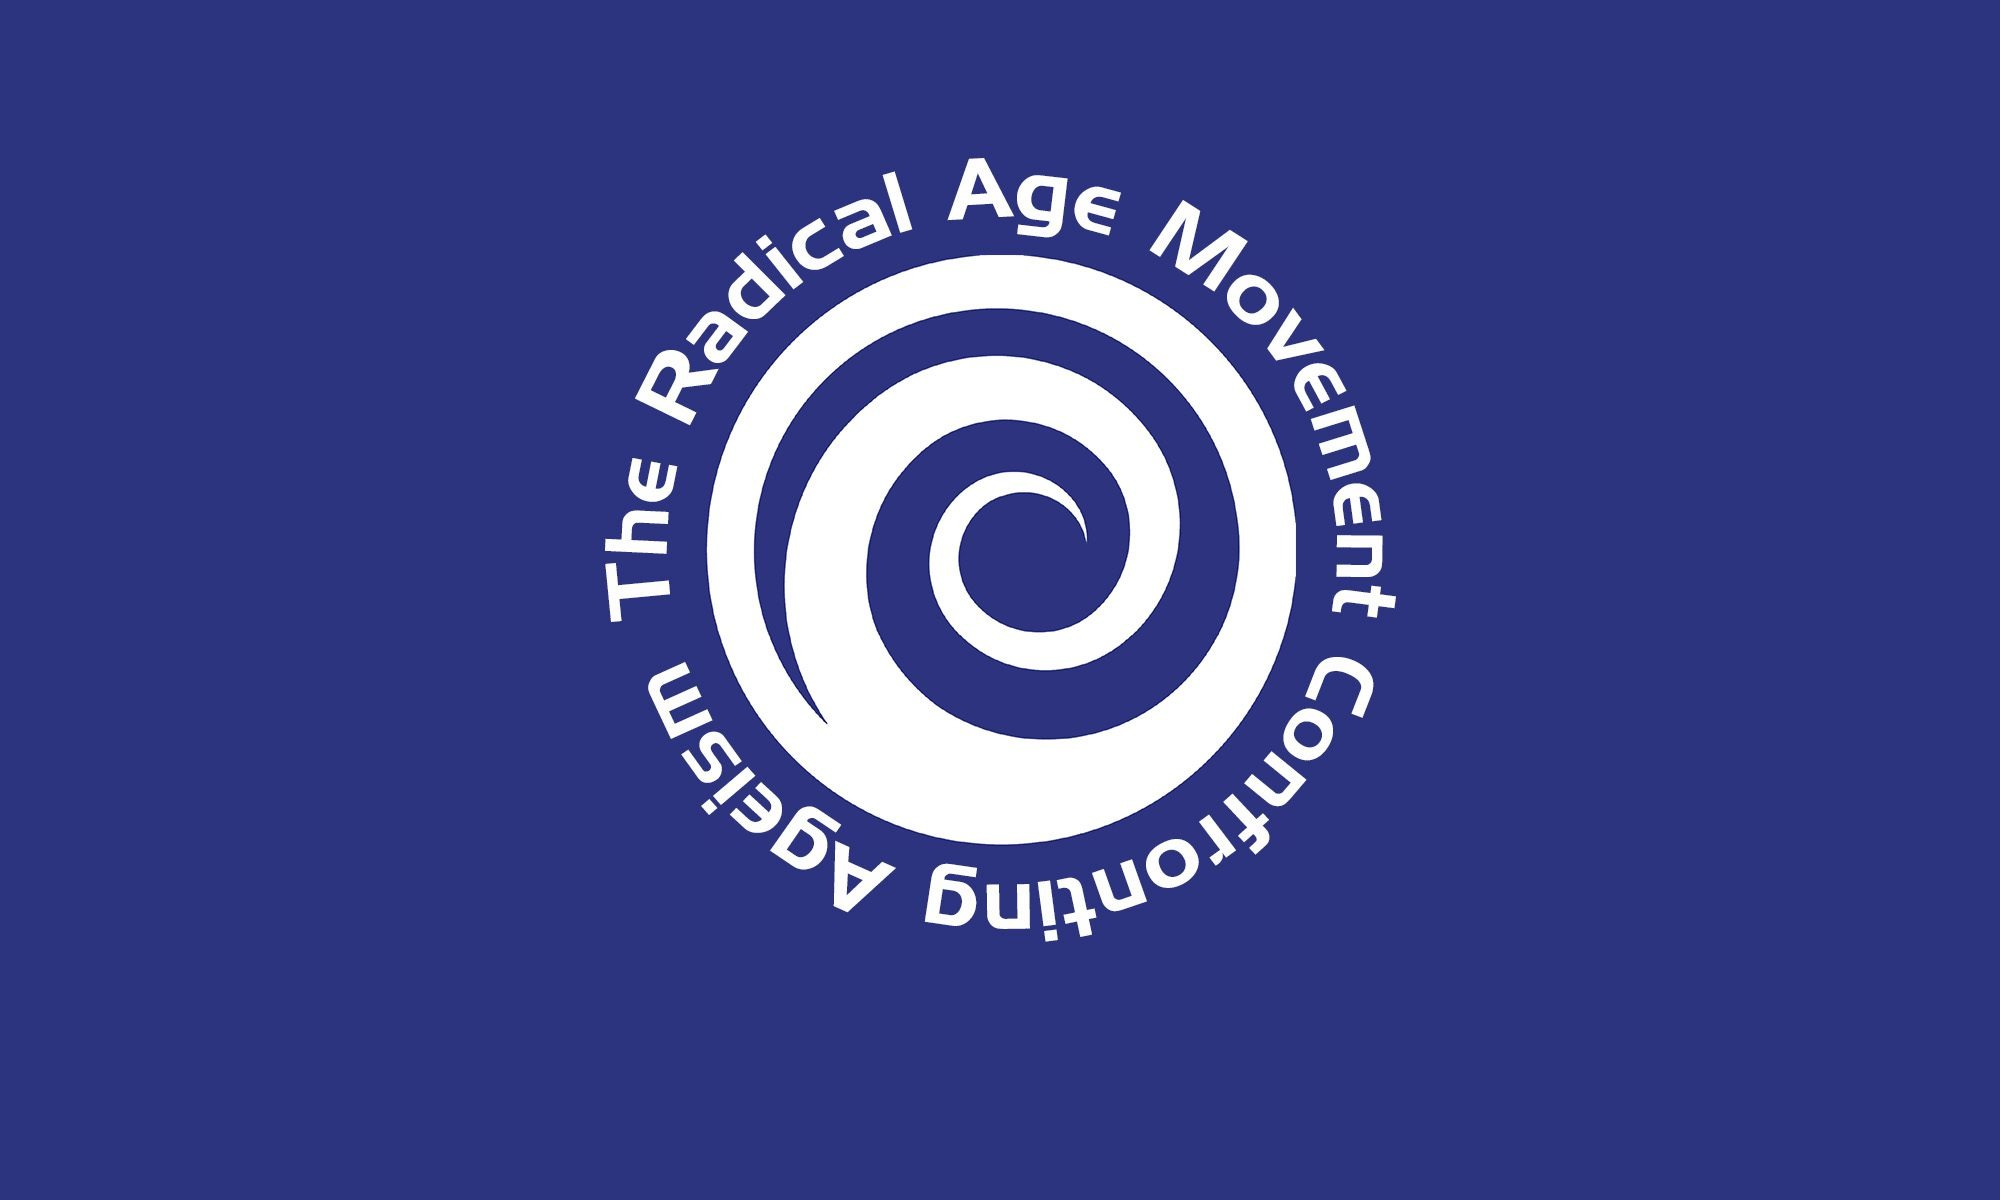 The Radical Age Movement, Inc.